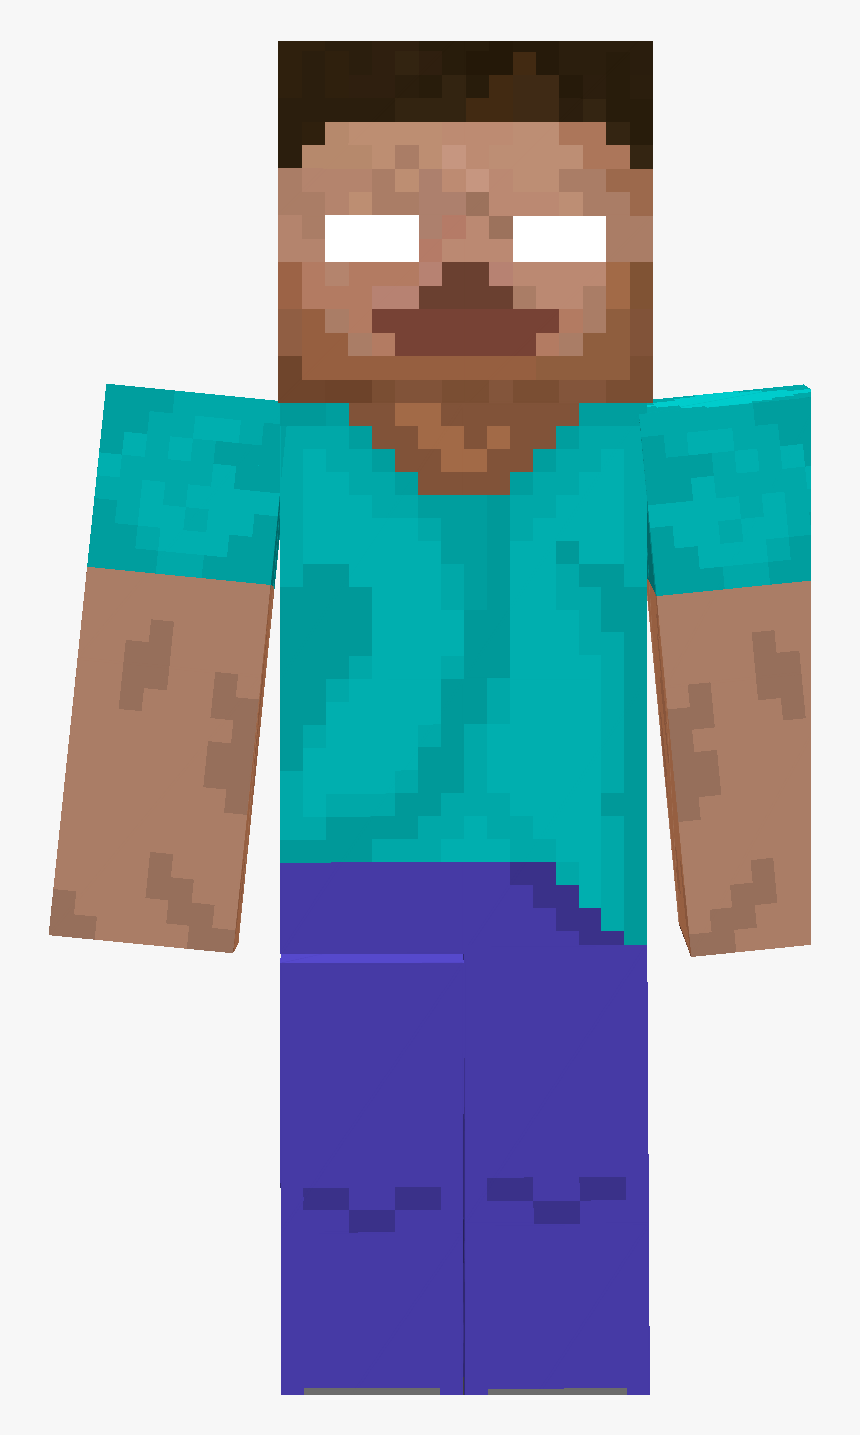 Minecraft Herobrine Skin Love It - Imagenes De Minecraft Estif, HD Png Download, Free Download